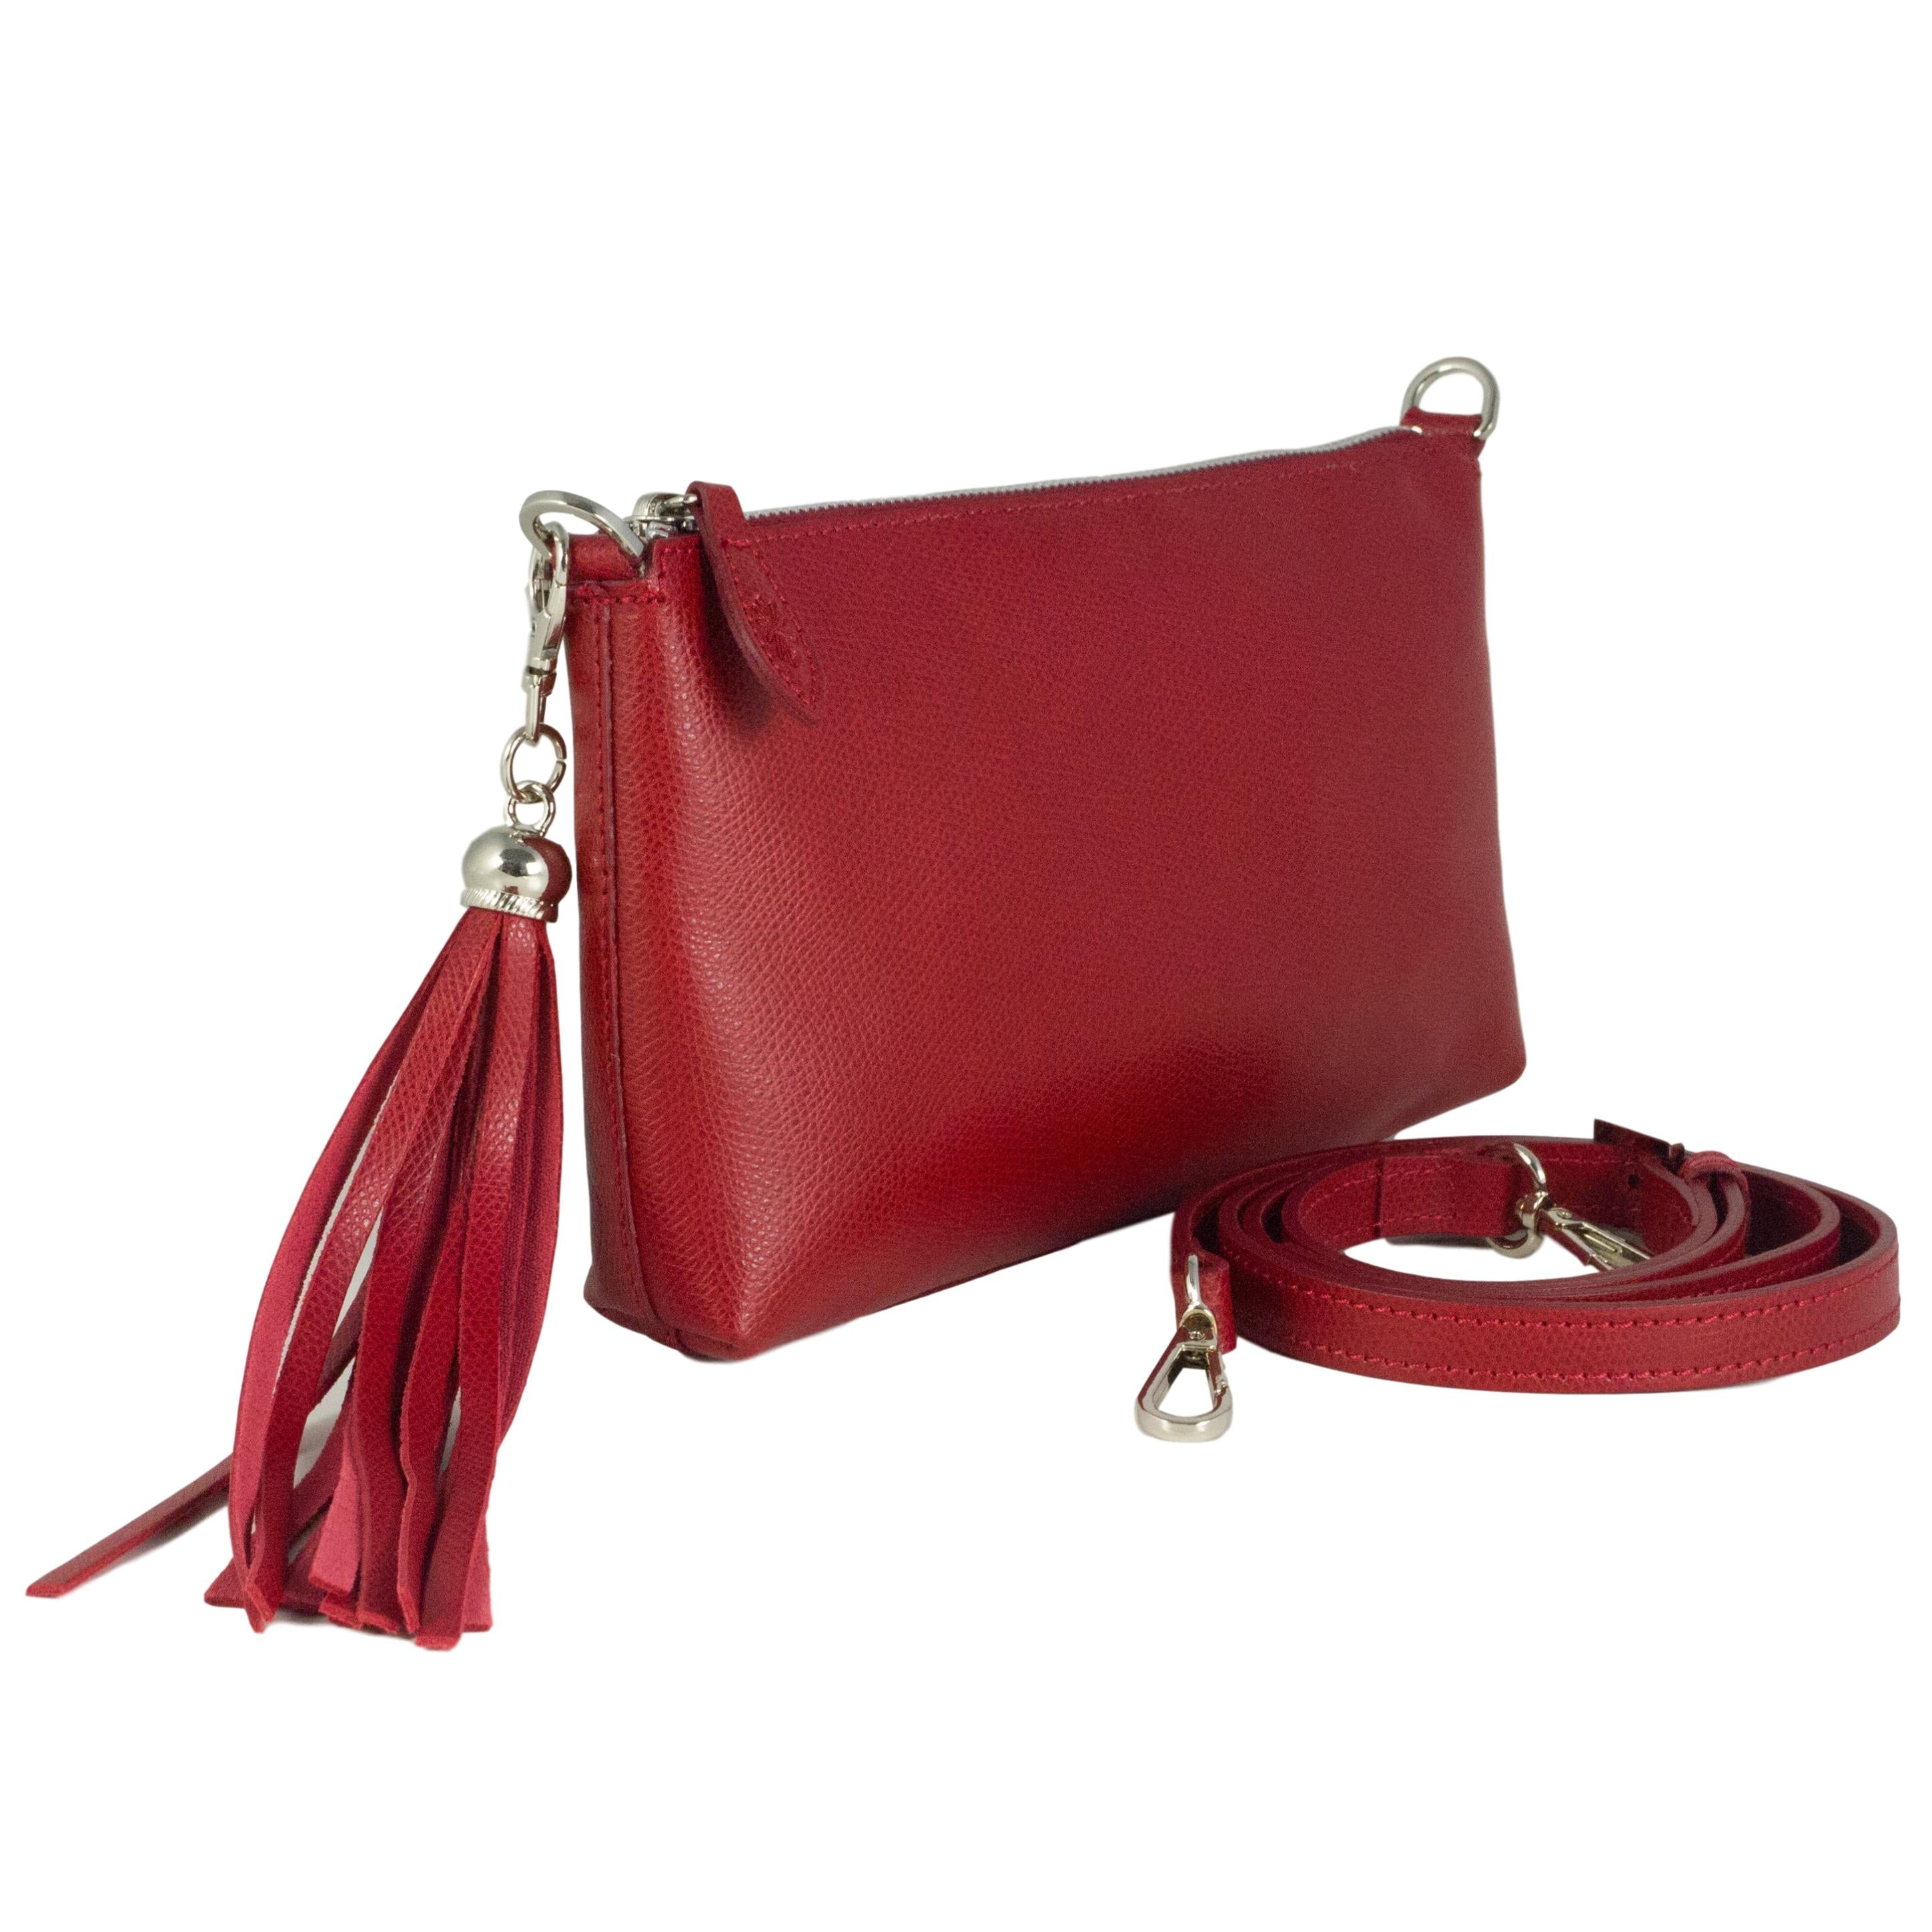 Clutch bag - Classic red leather Forget Me Not